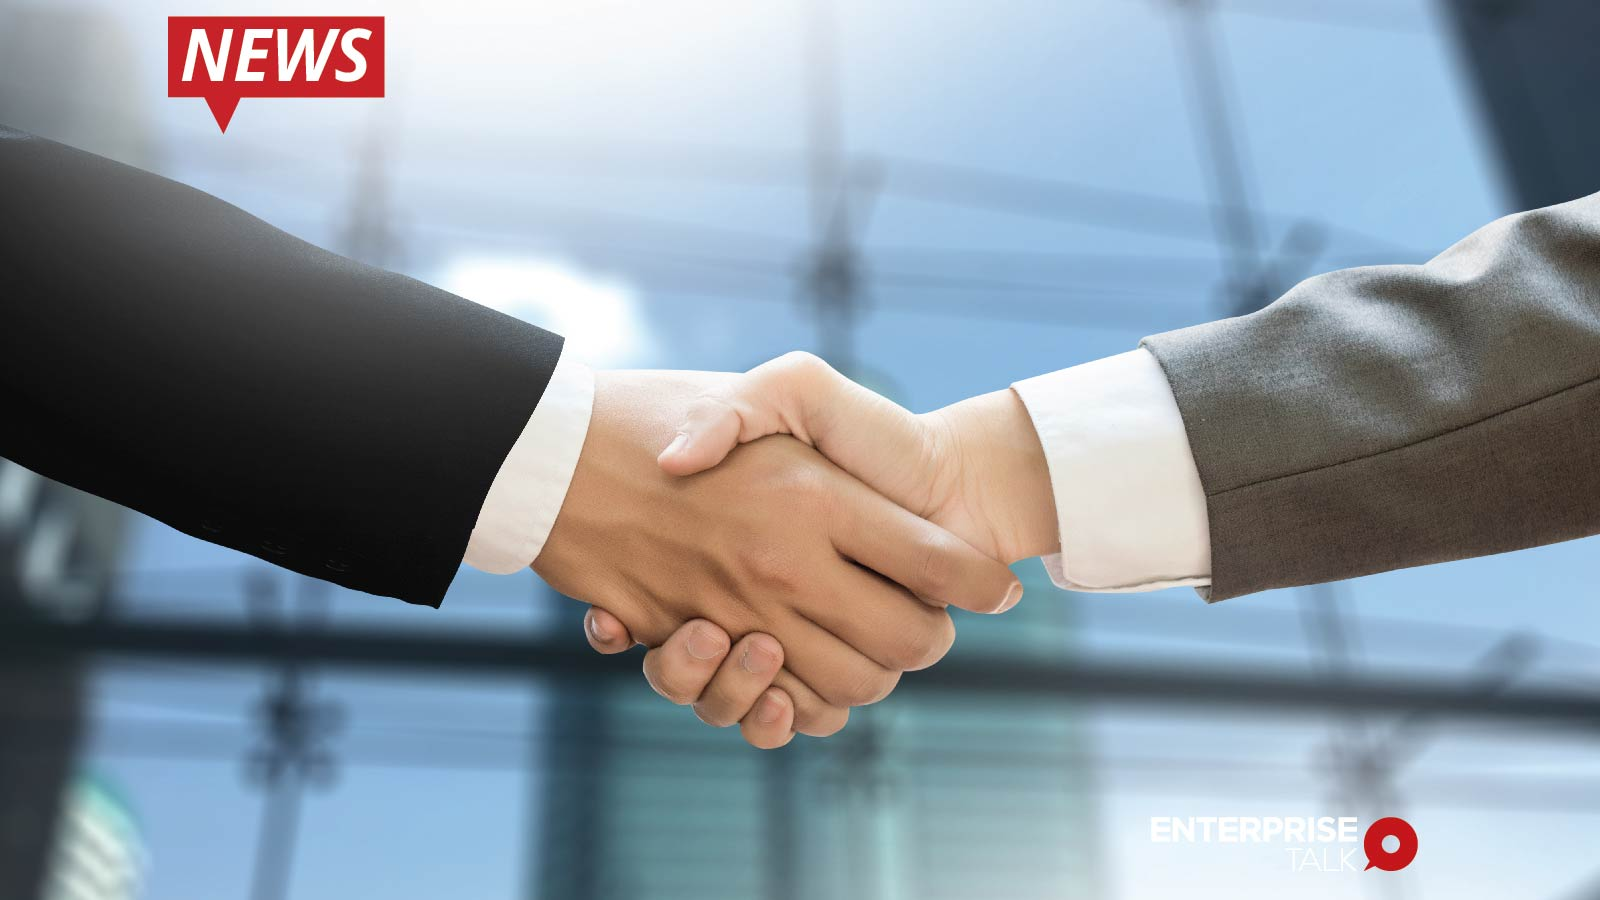 Hyland acquires RPA software provider Another Monday